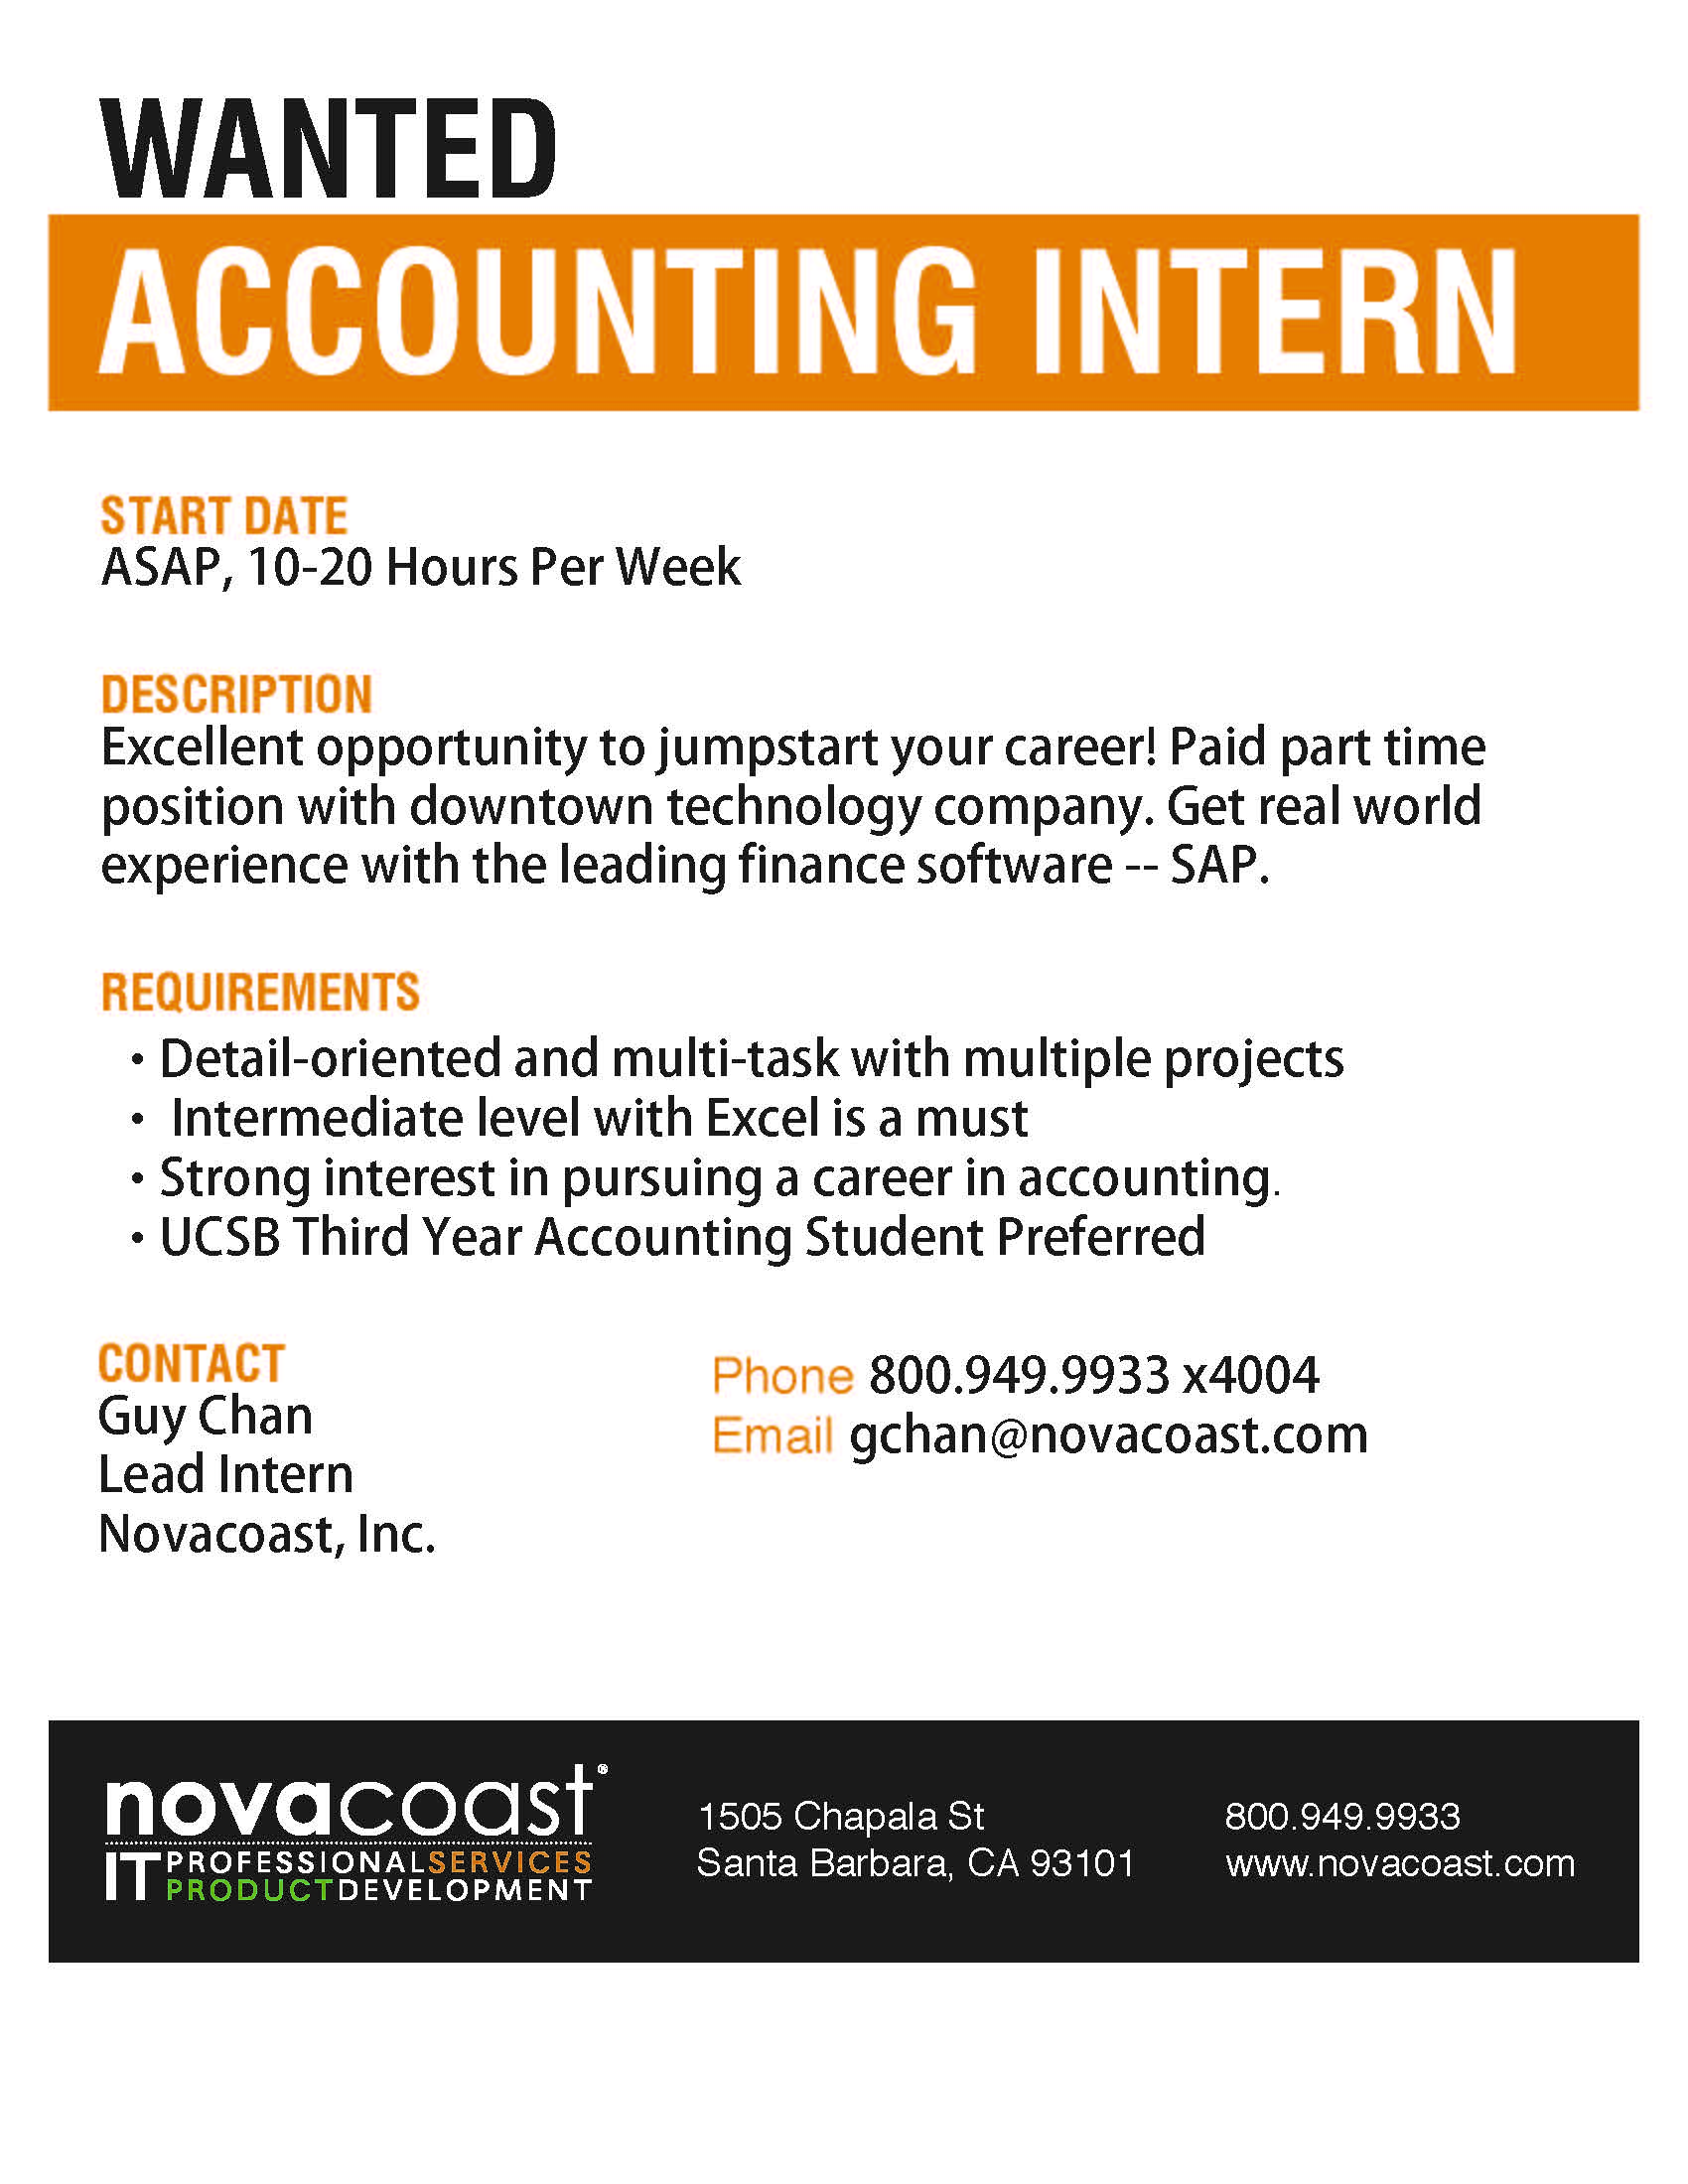 novacoast accounting internship flier fall 2013 1